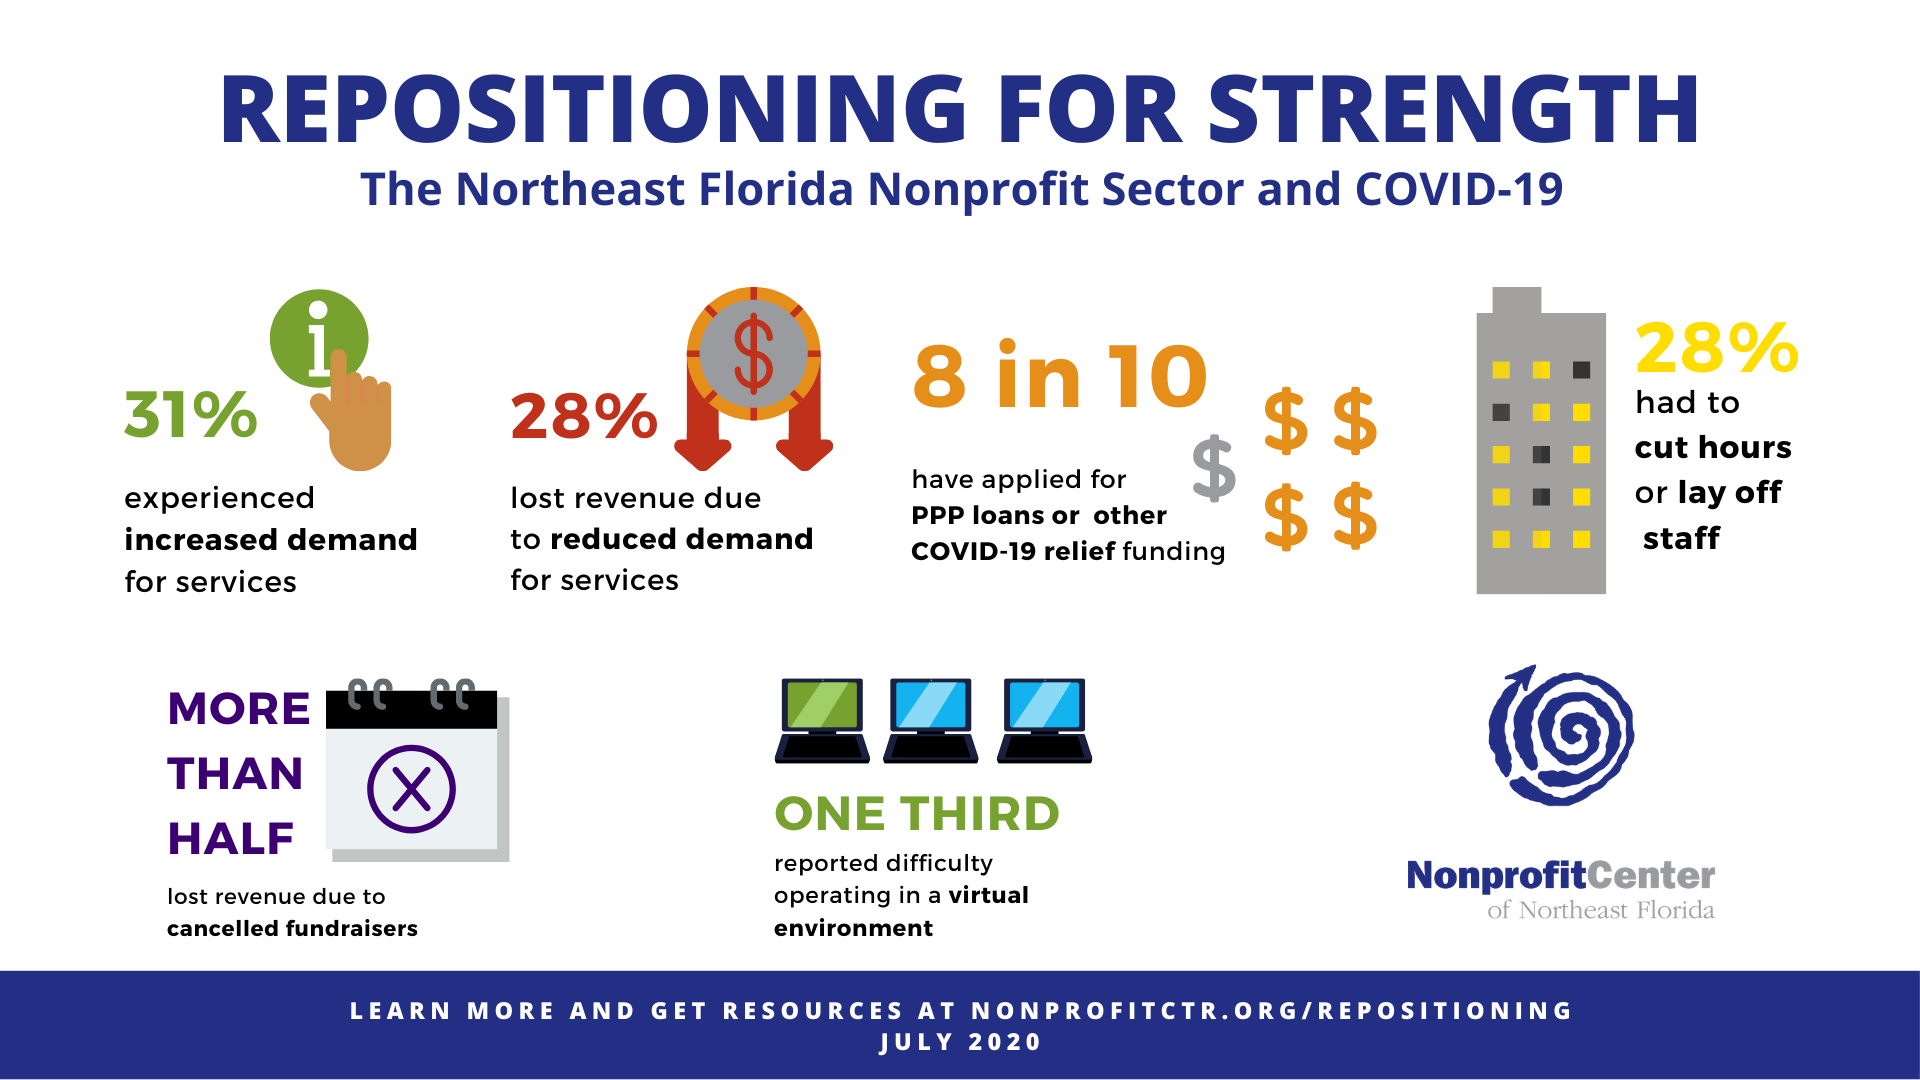 Repositioning For Strength July 2020 Survey results. 31% of nonprofits experienced an increase in demand for services, 28% lost revenue due to decreased demand for services, 8 in 10 applied for some form of financial relief, 28% had to cut hours or lay off staff, more than half lost revenue due to cancelled fundraisers, and one third reported difficulty operating in a virtual environment.